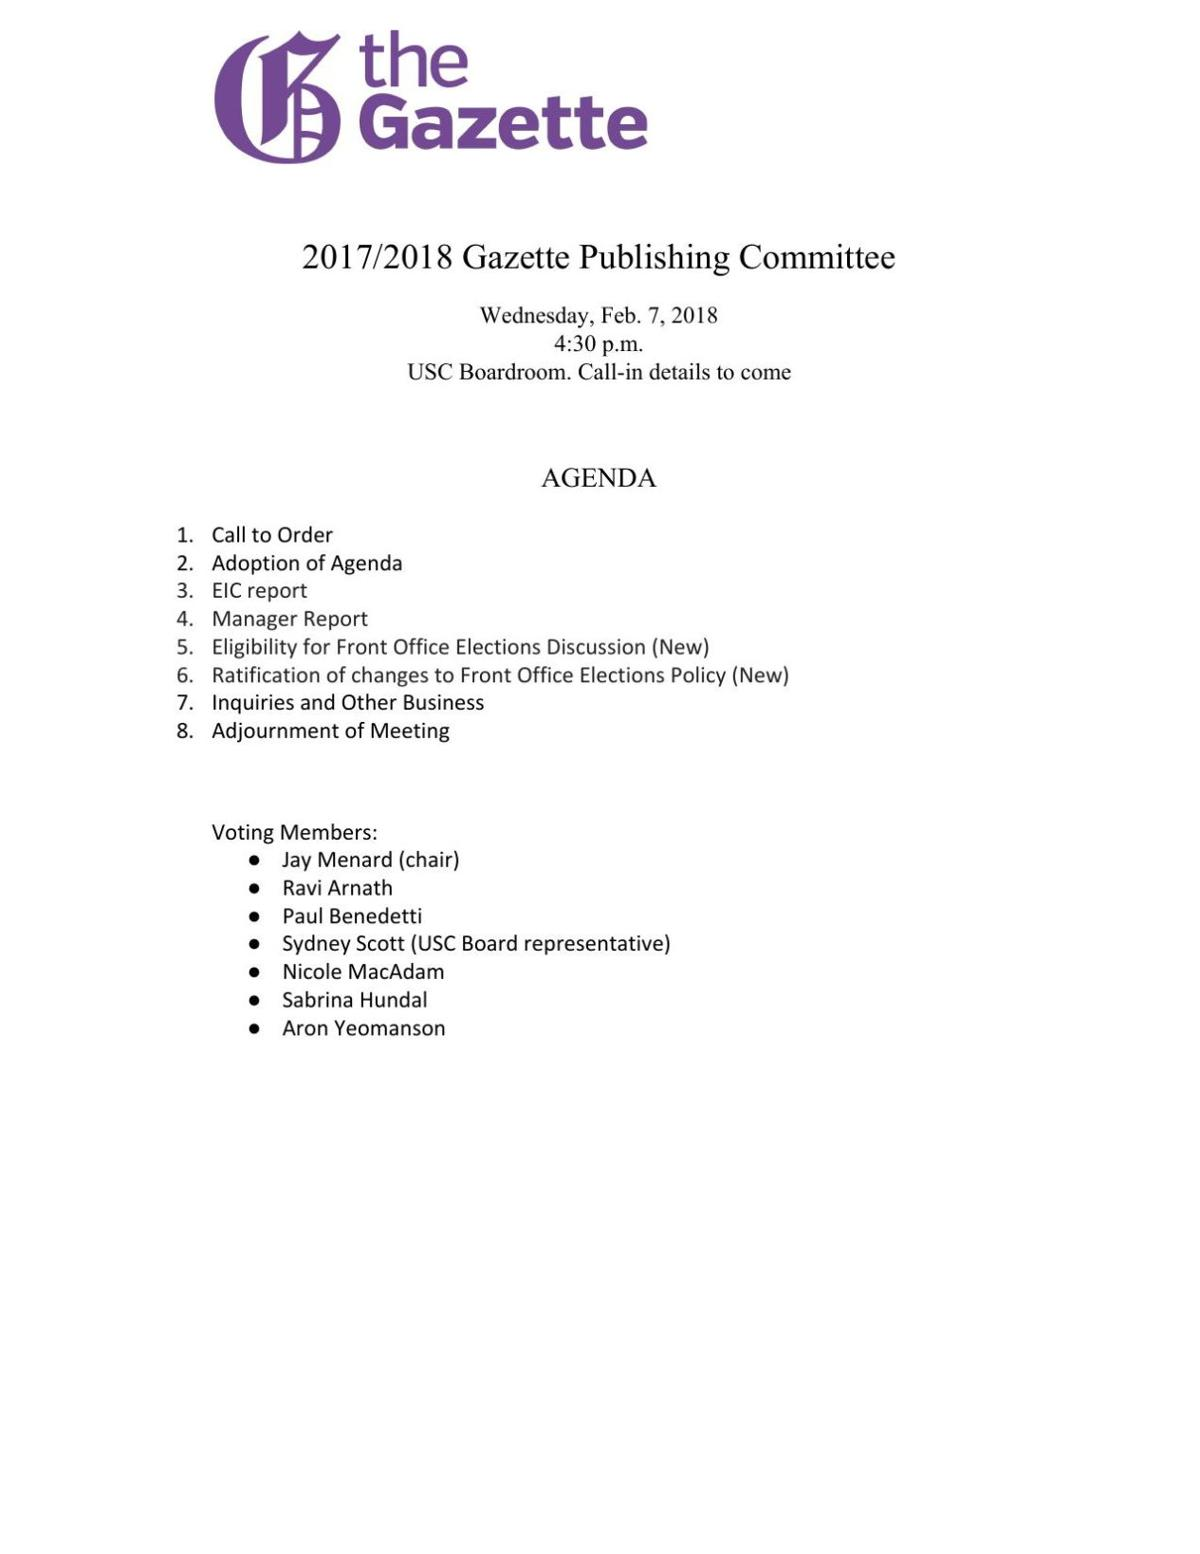 Publications committee February 2018